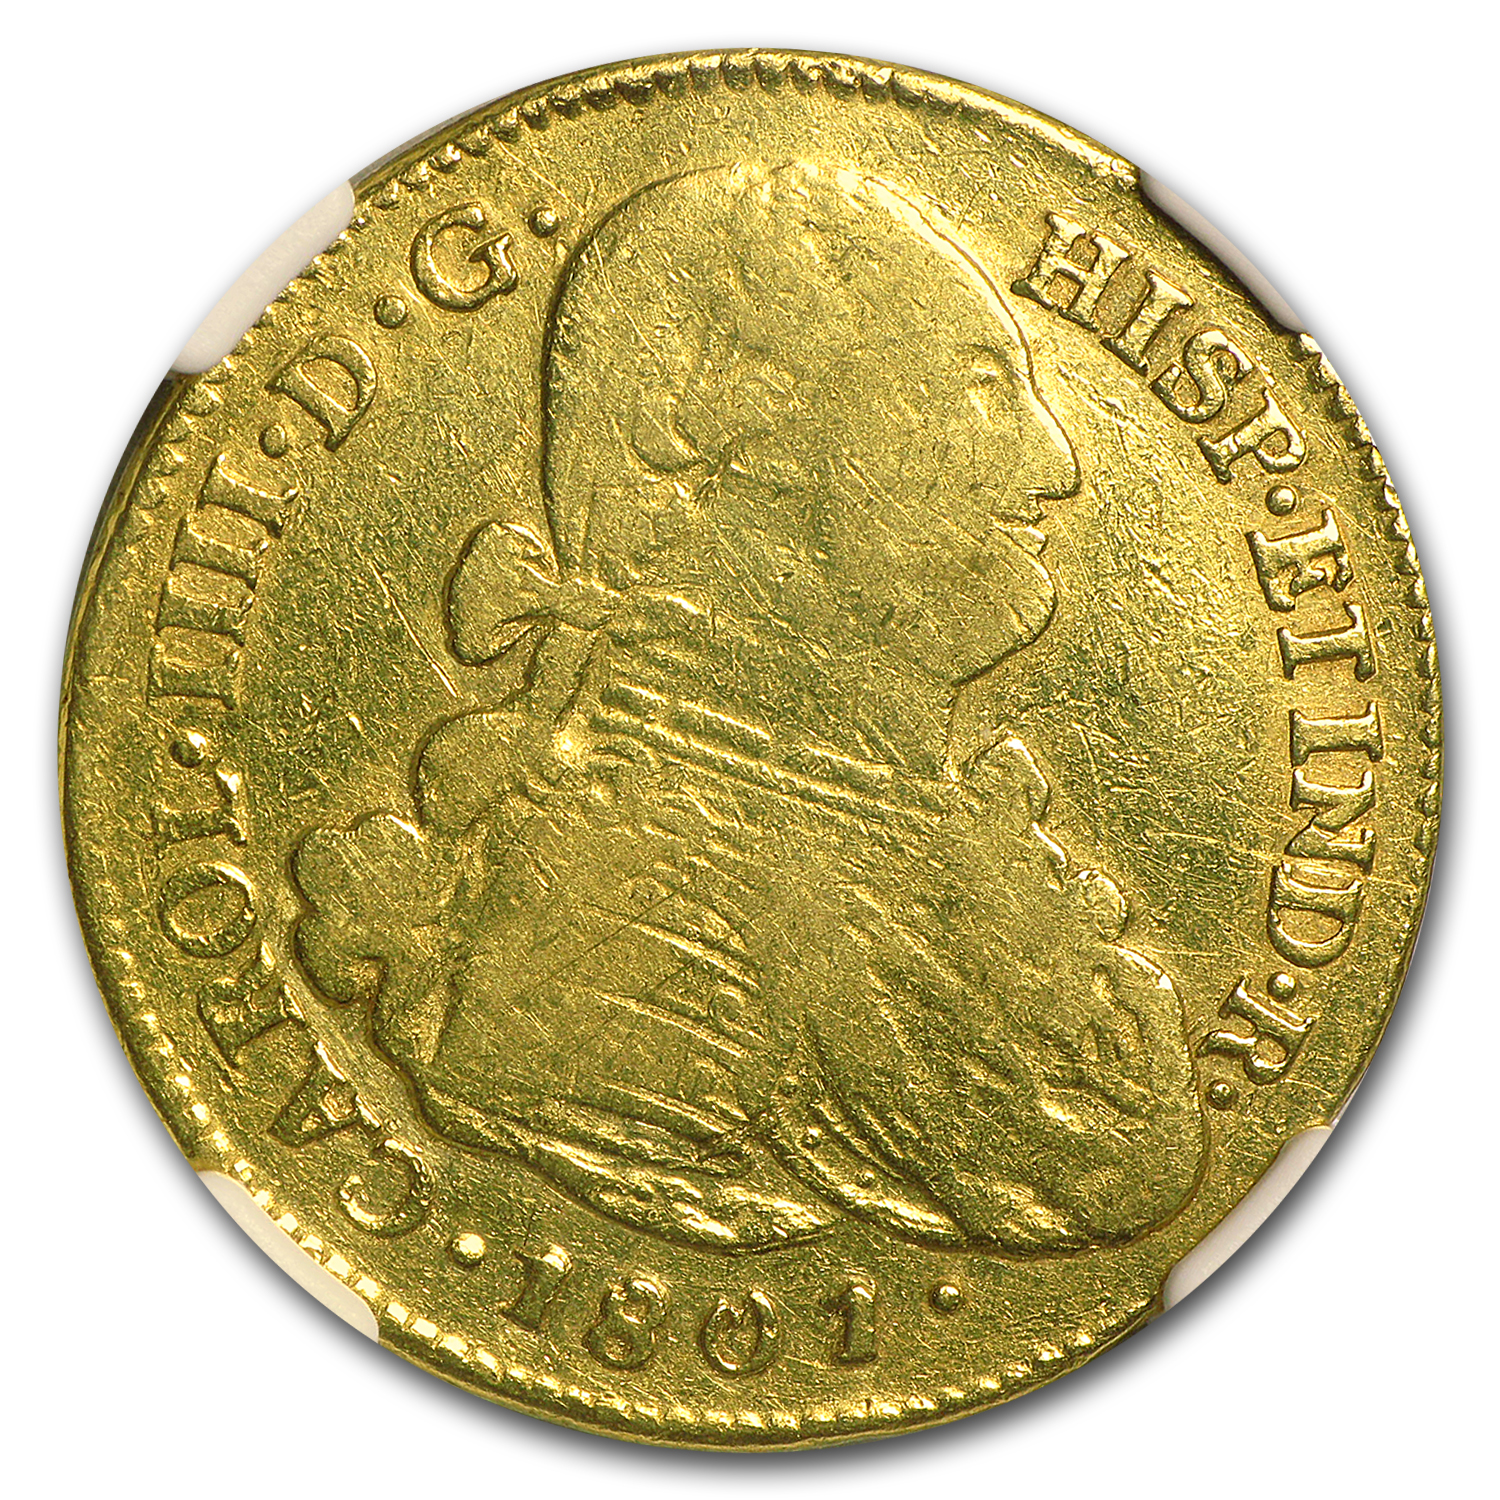 1801 P-JF Colombia Gold 4 Escudo Carol IIII VF-20 NGC